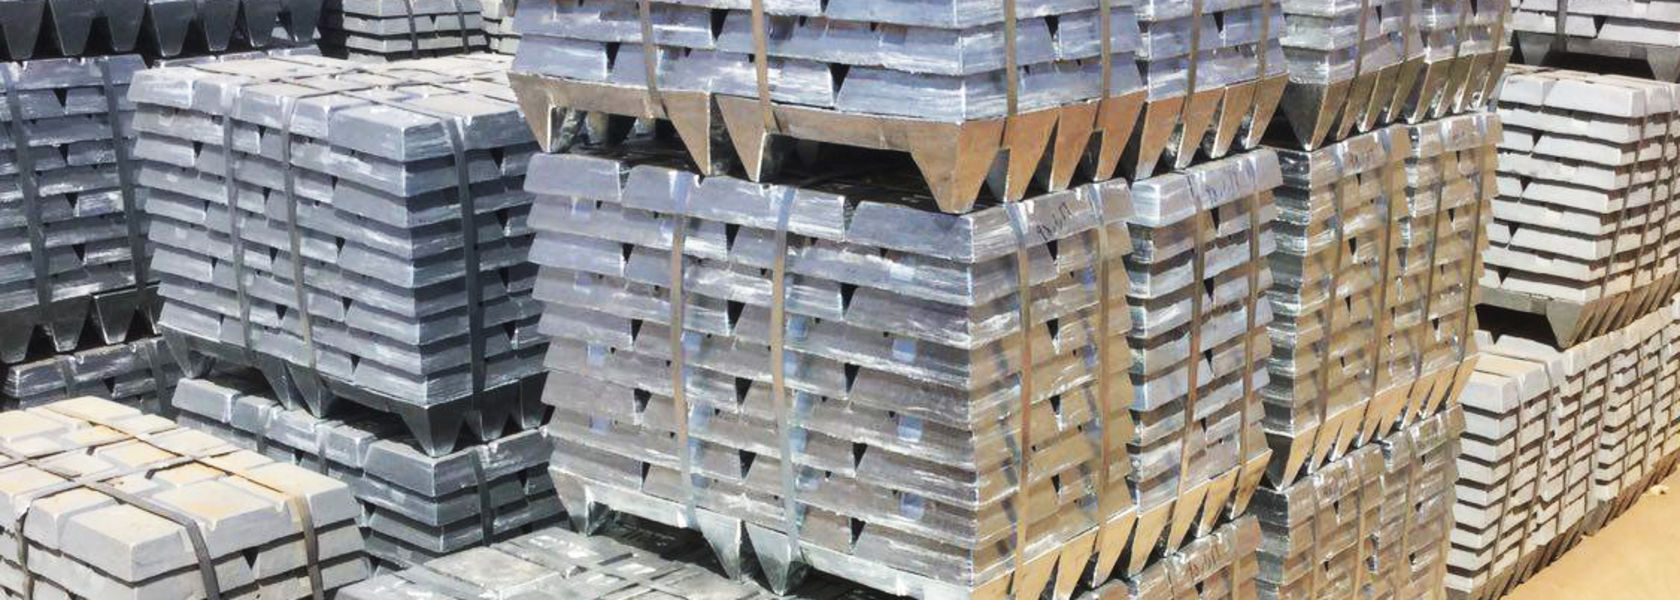 Fitch sees zinc fading long-term